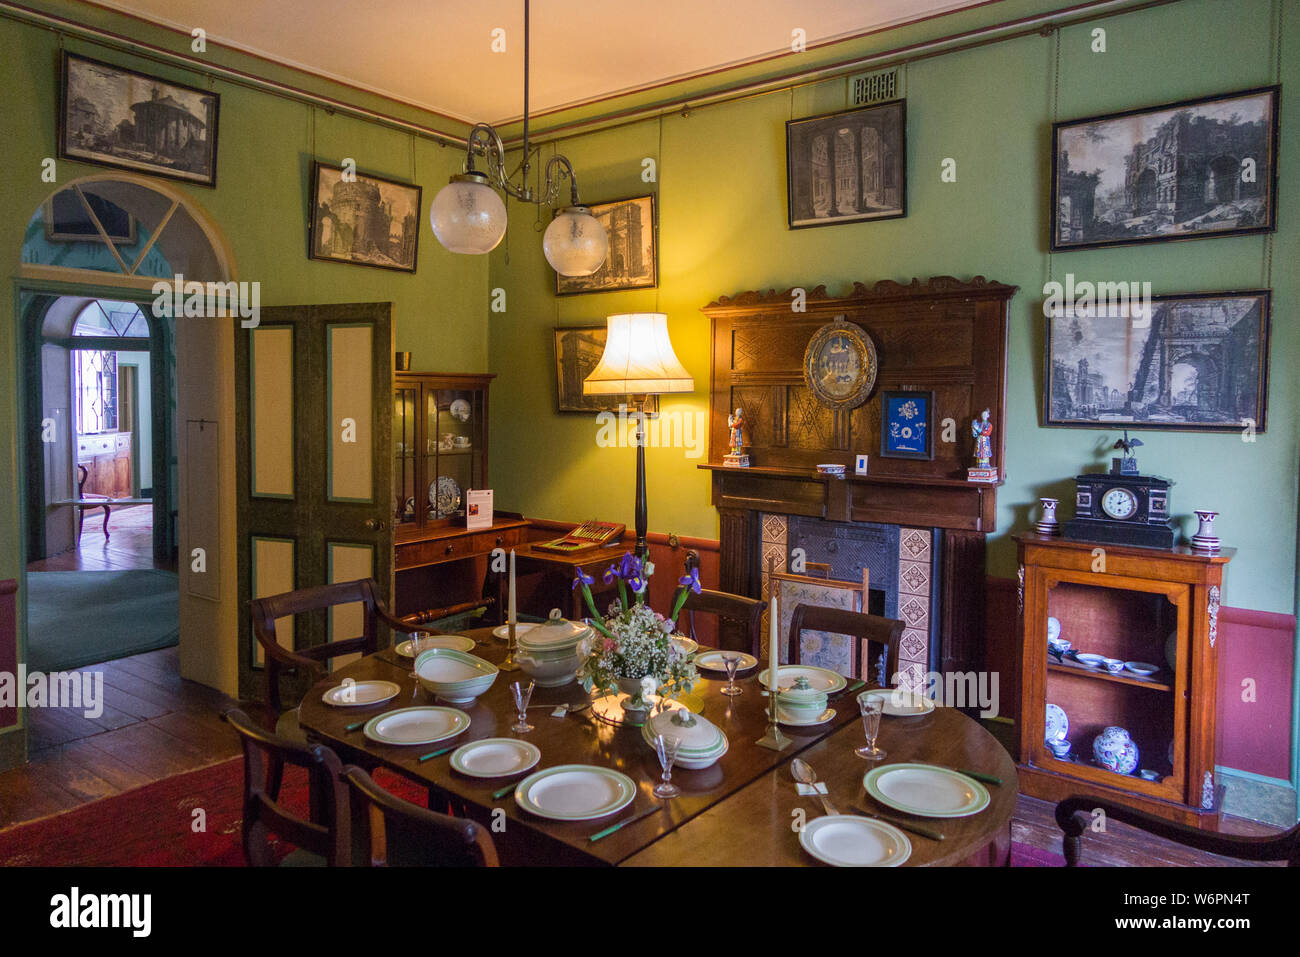 Page 3 Unusual House Interior High Resolution Stock Photography And Images Alamy